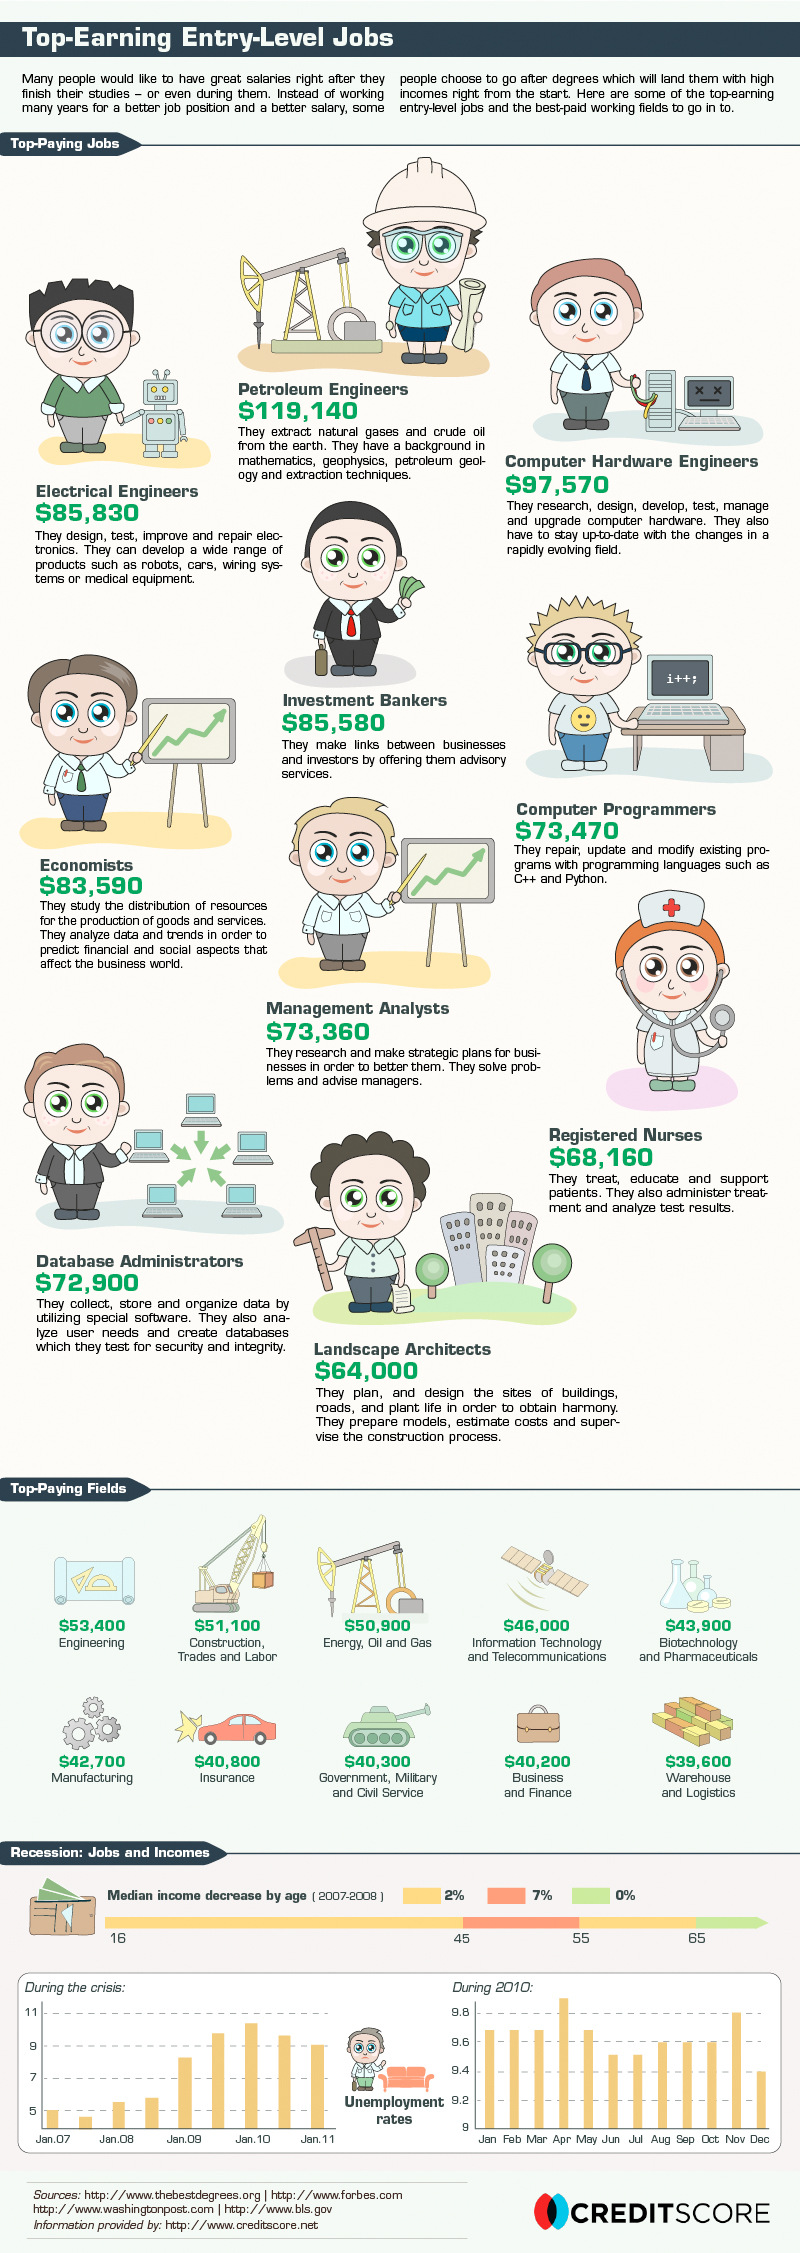 Top-Earning Entry-Level Jobs [infographic]